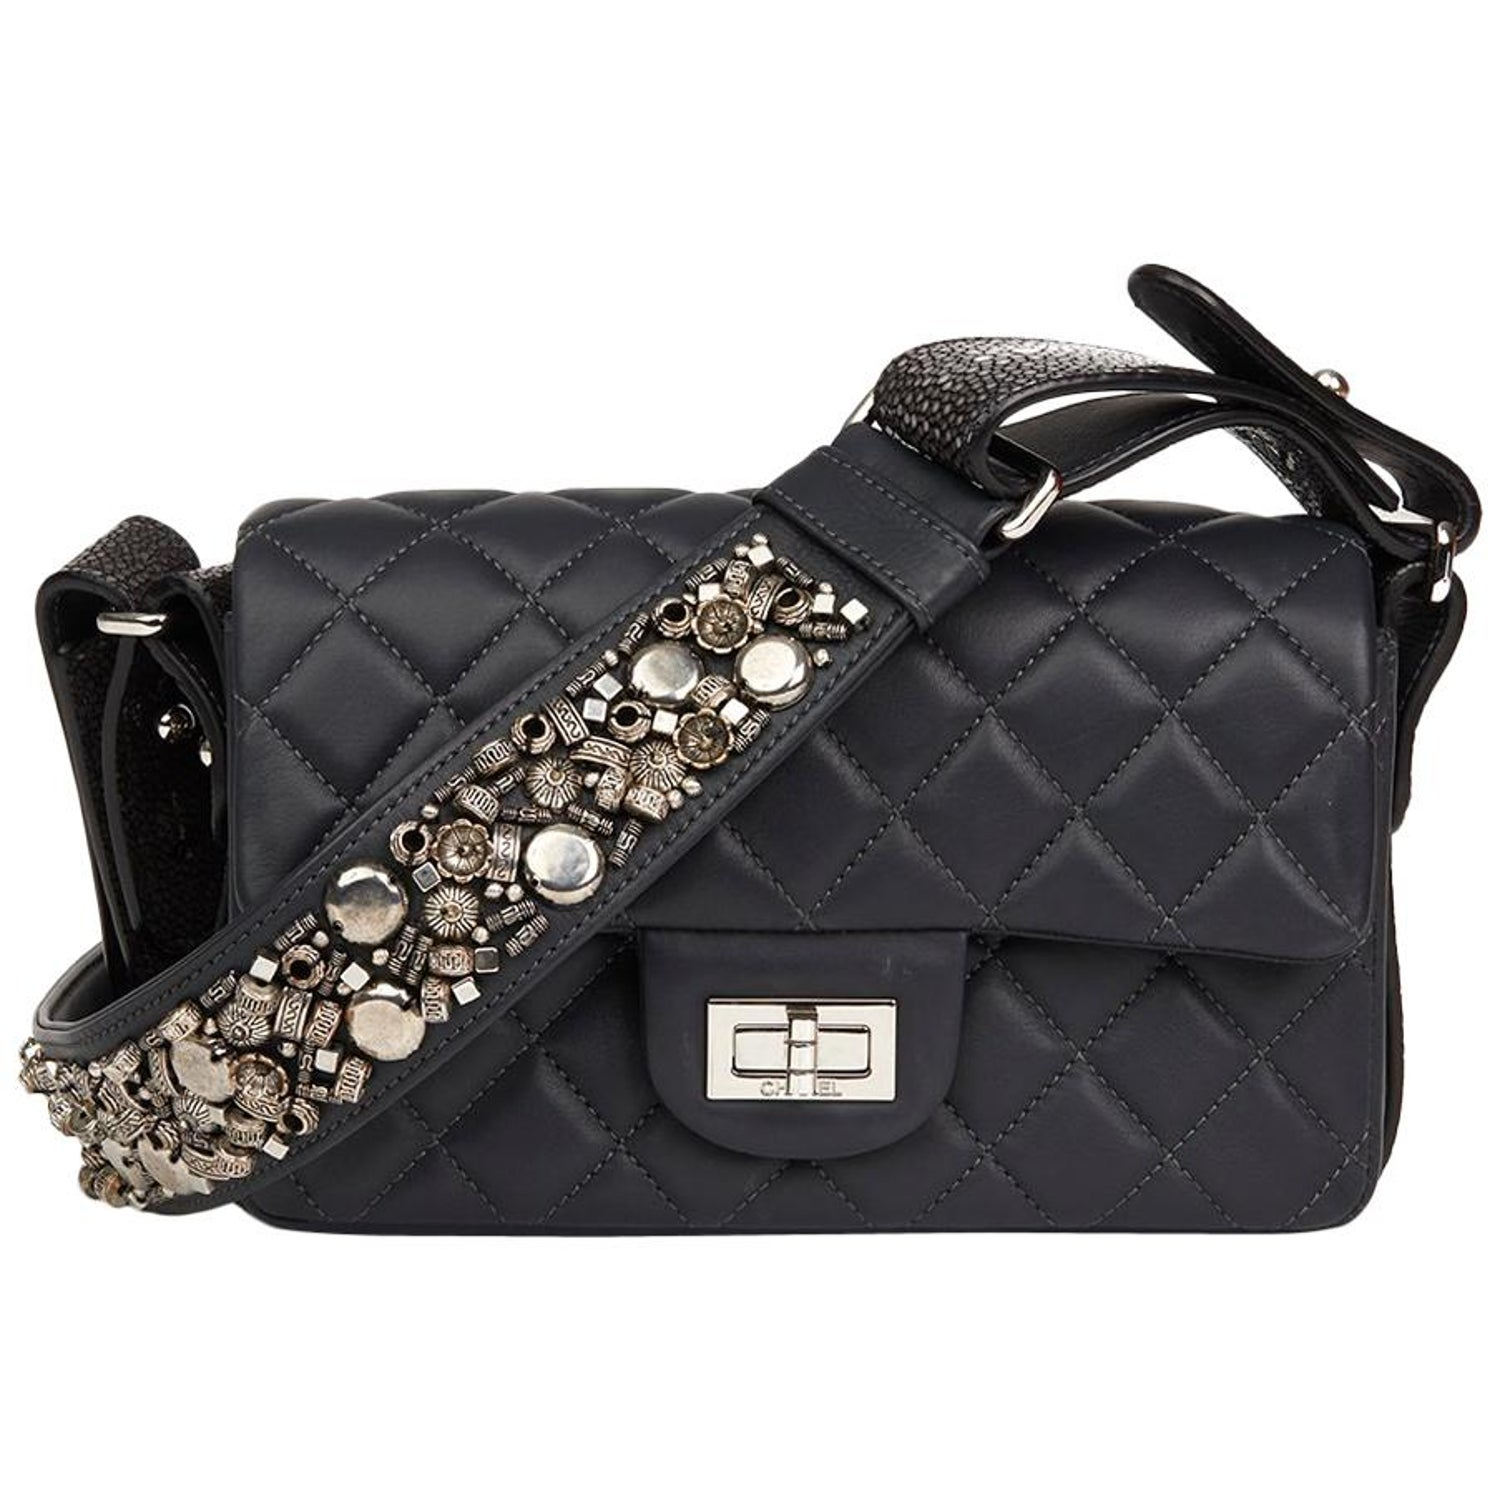 c96e0974b10a 2012 Chanel Blue Lambskin and Galuchat Stingray 2.55 Reissue 224 Single Flap  Bag at 1stdibs